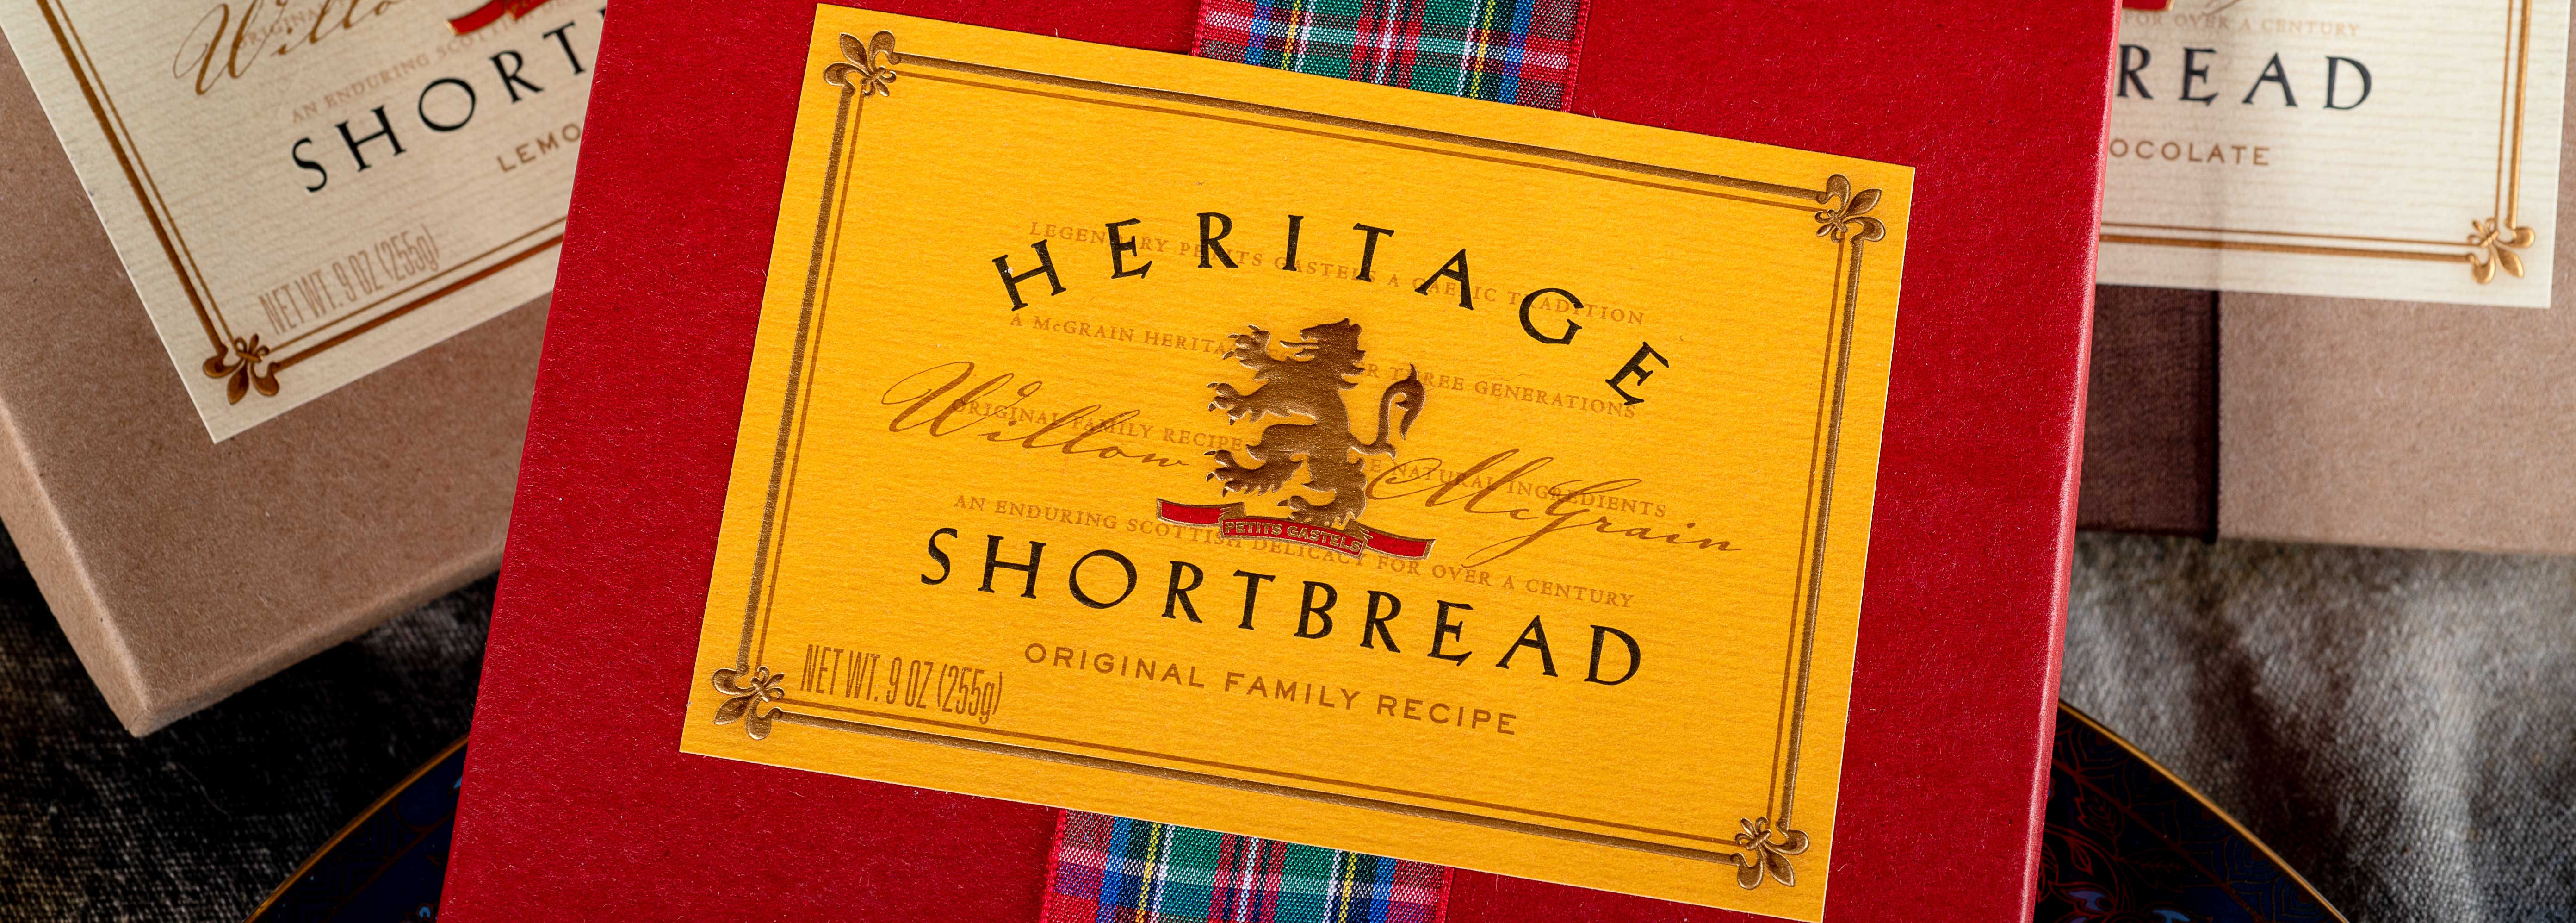 Heritage Shortbread Holiday